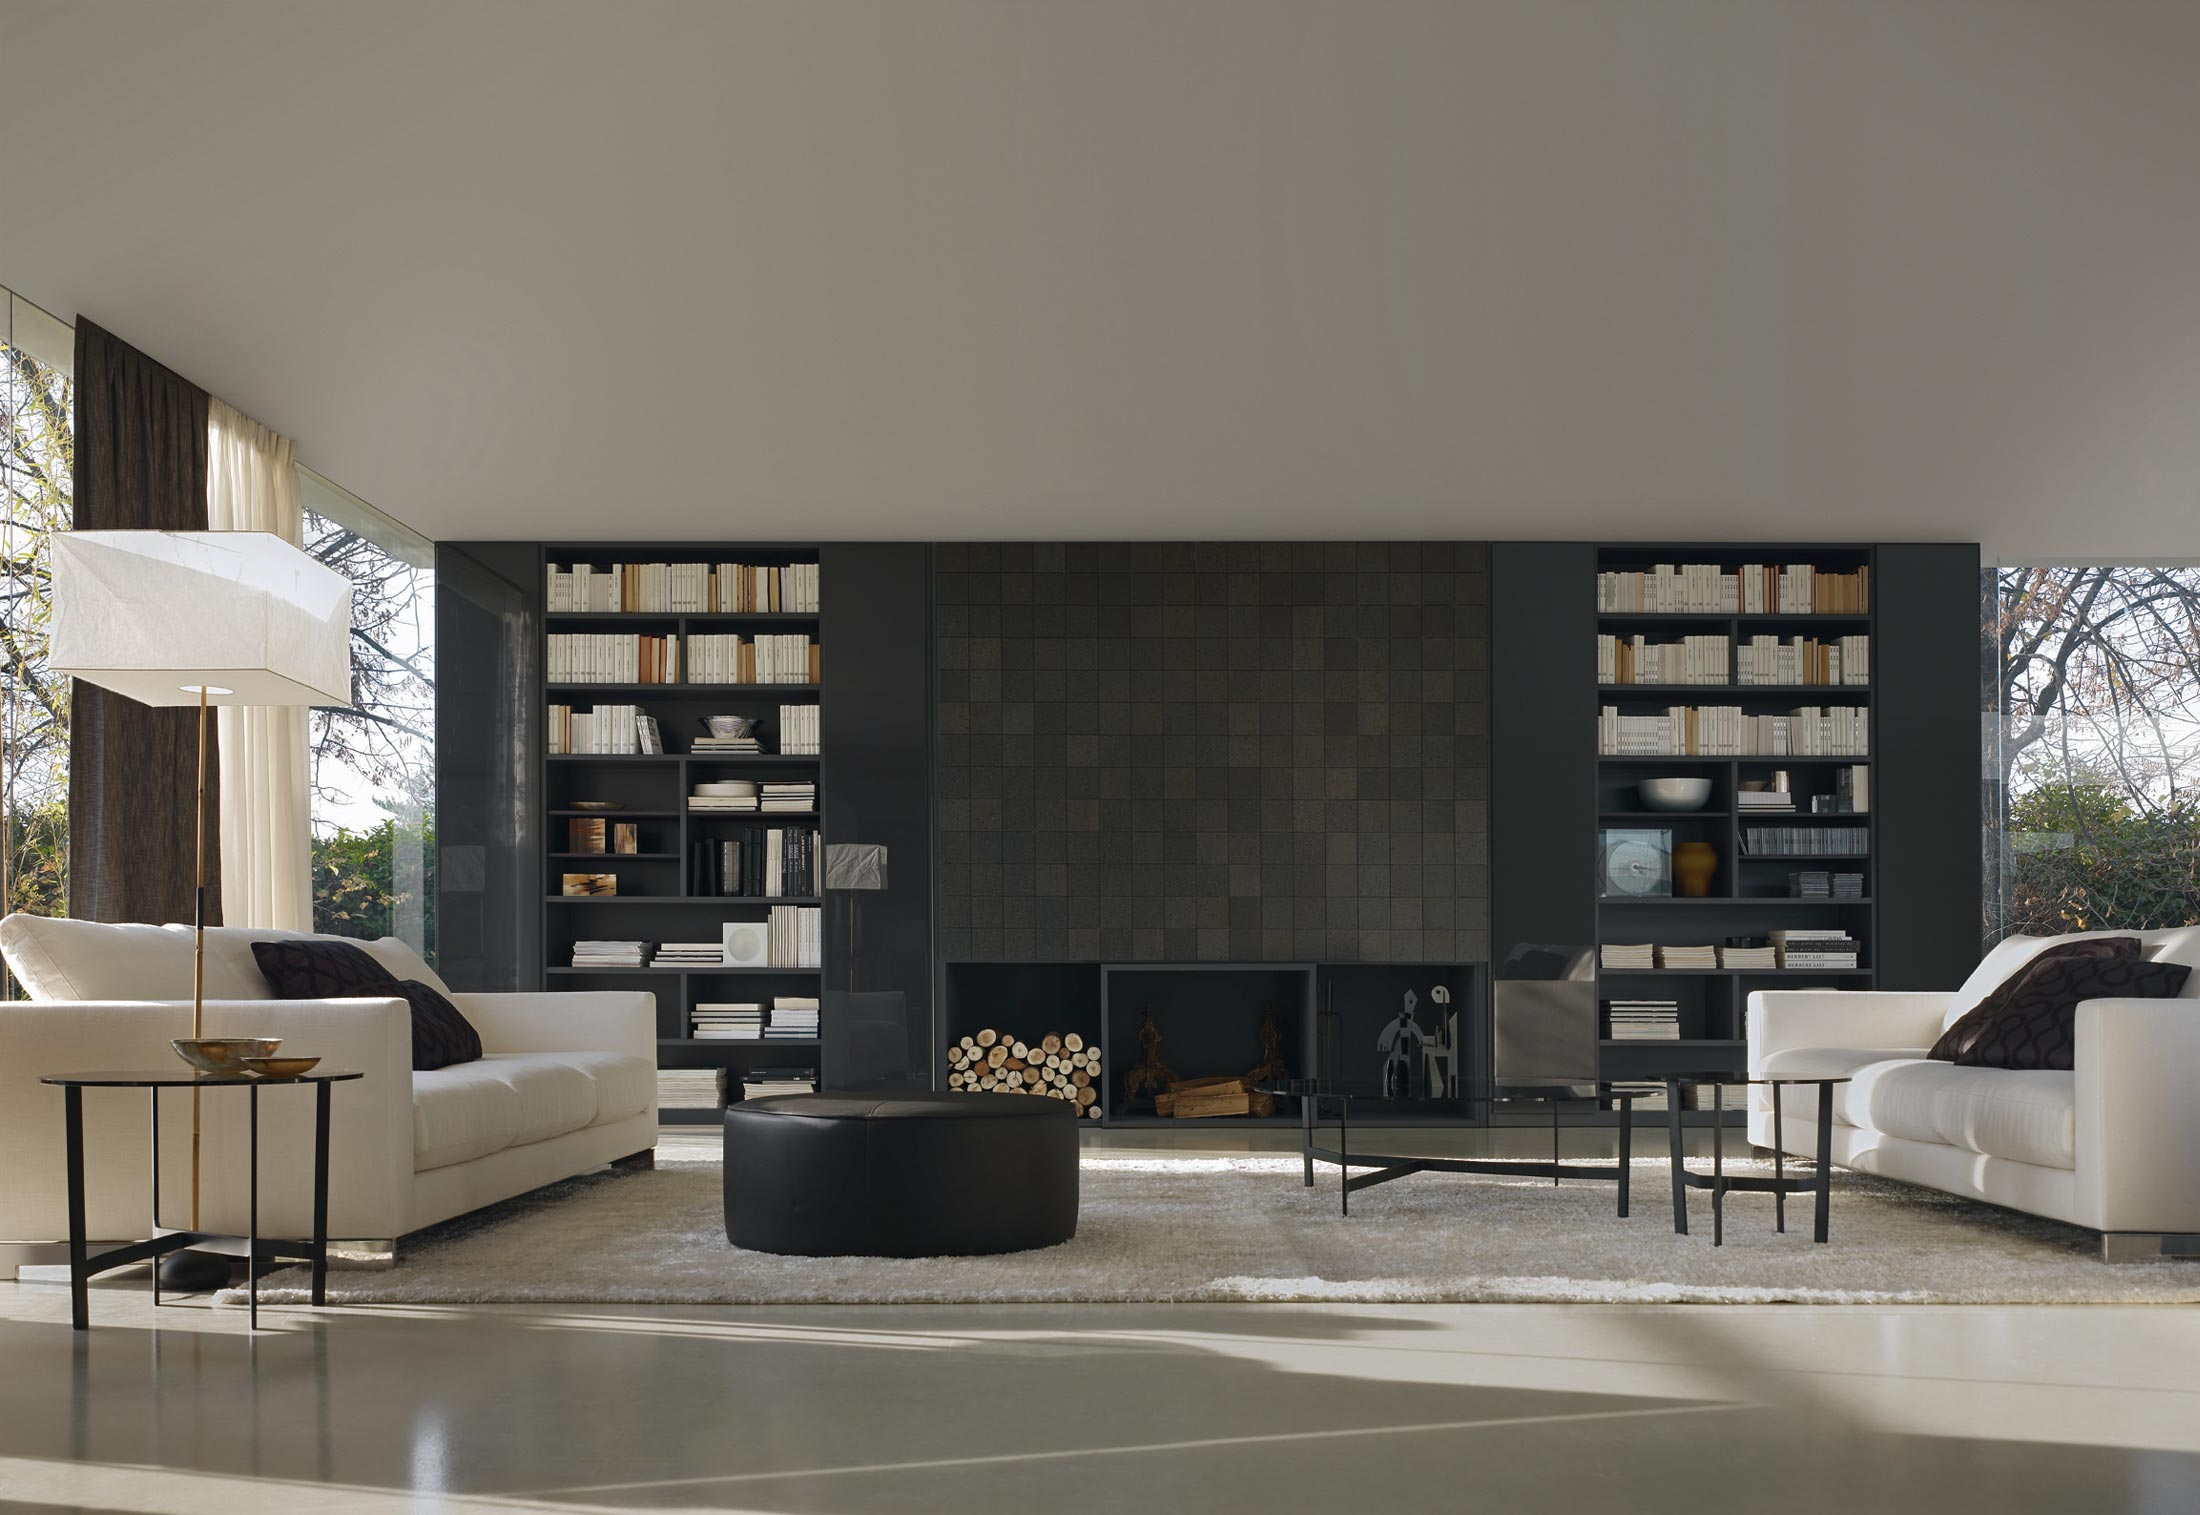 505 di molteni c pareti e librerie arredamento mollura home design. Black Bedroom Furniture Sets. Home Design Ideas